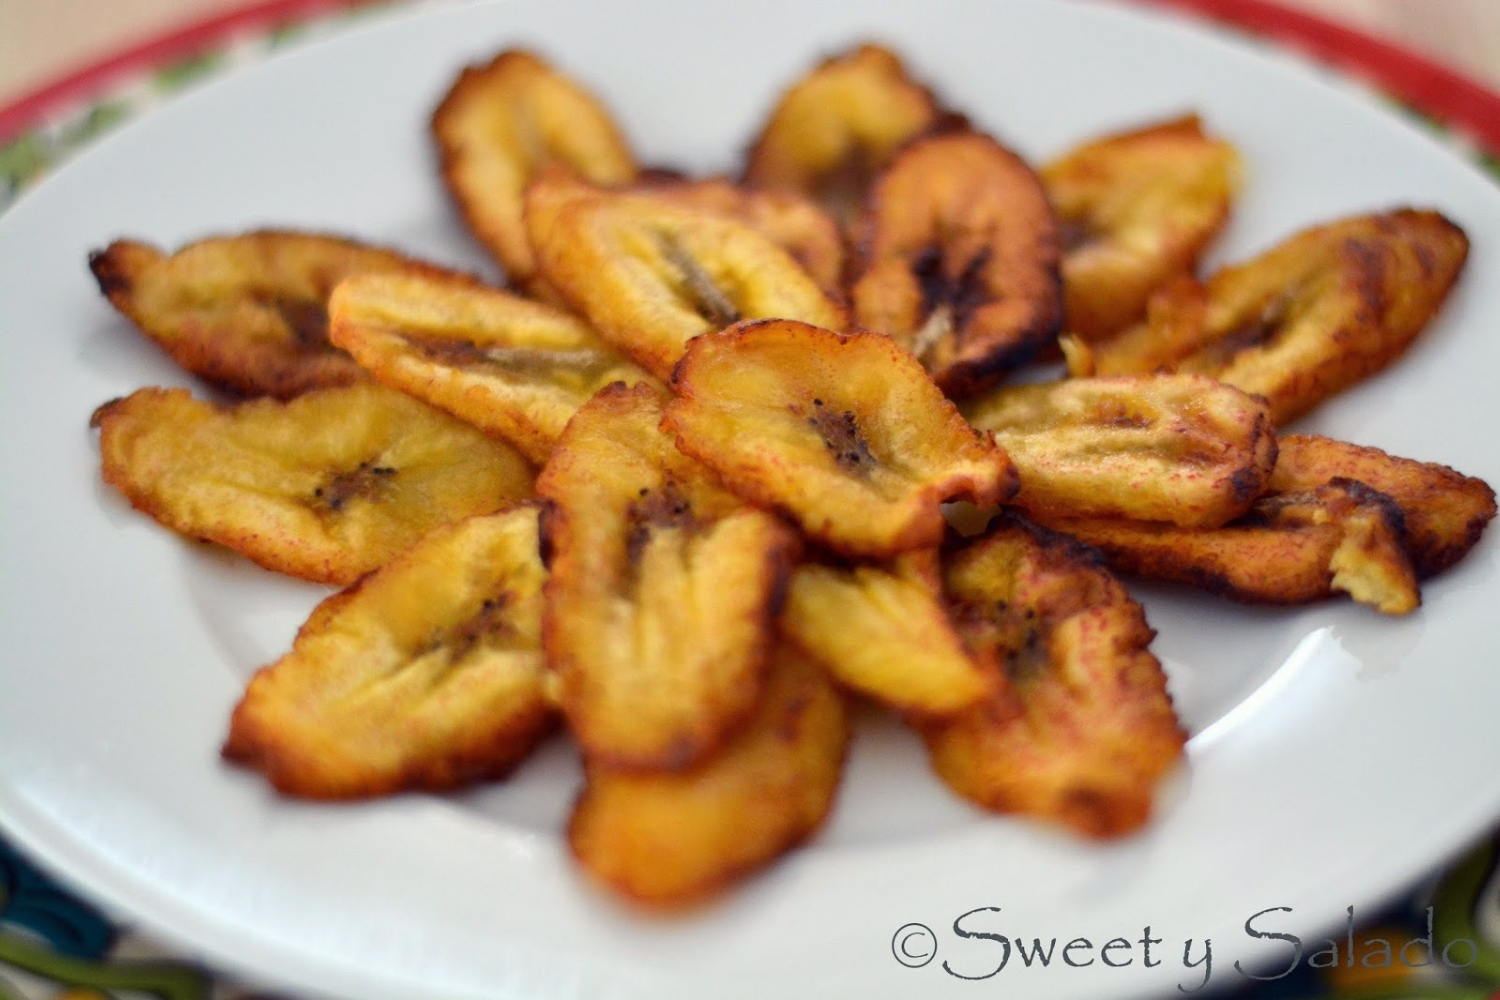 Sweet Plantain Slices (Tajadas), photo by Hispanic Kitchen